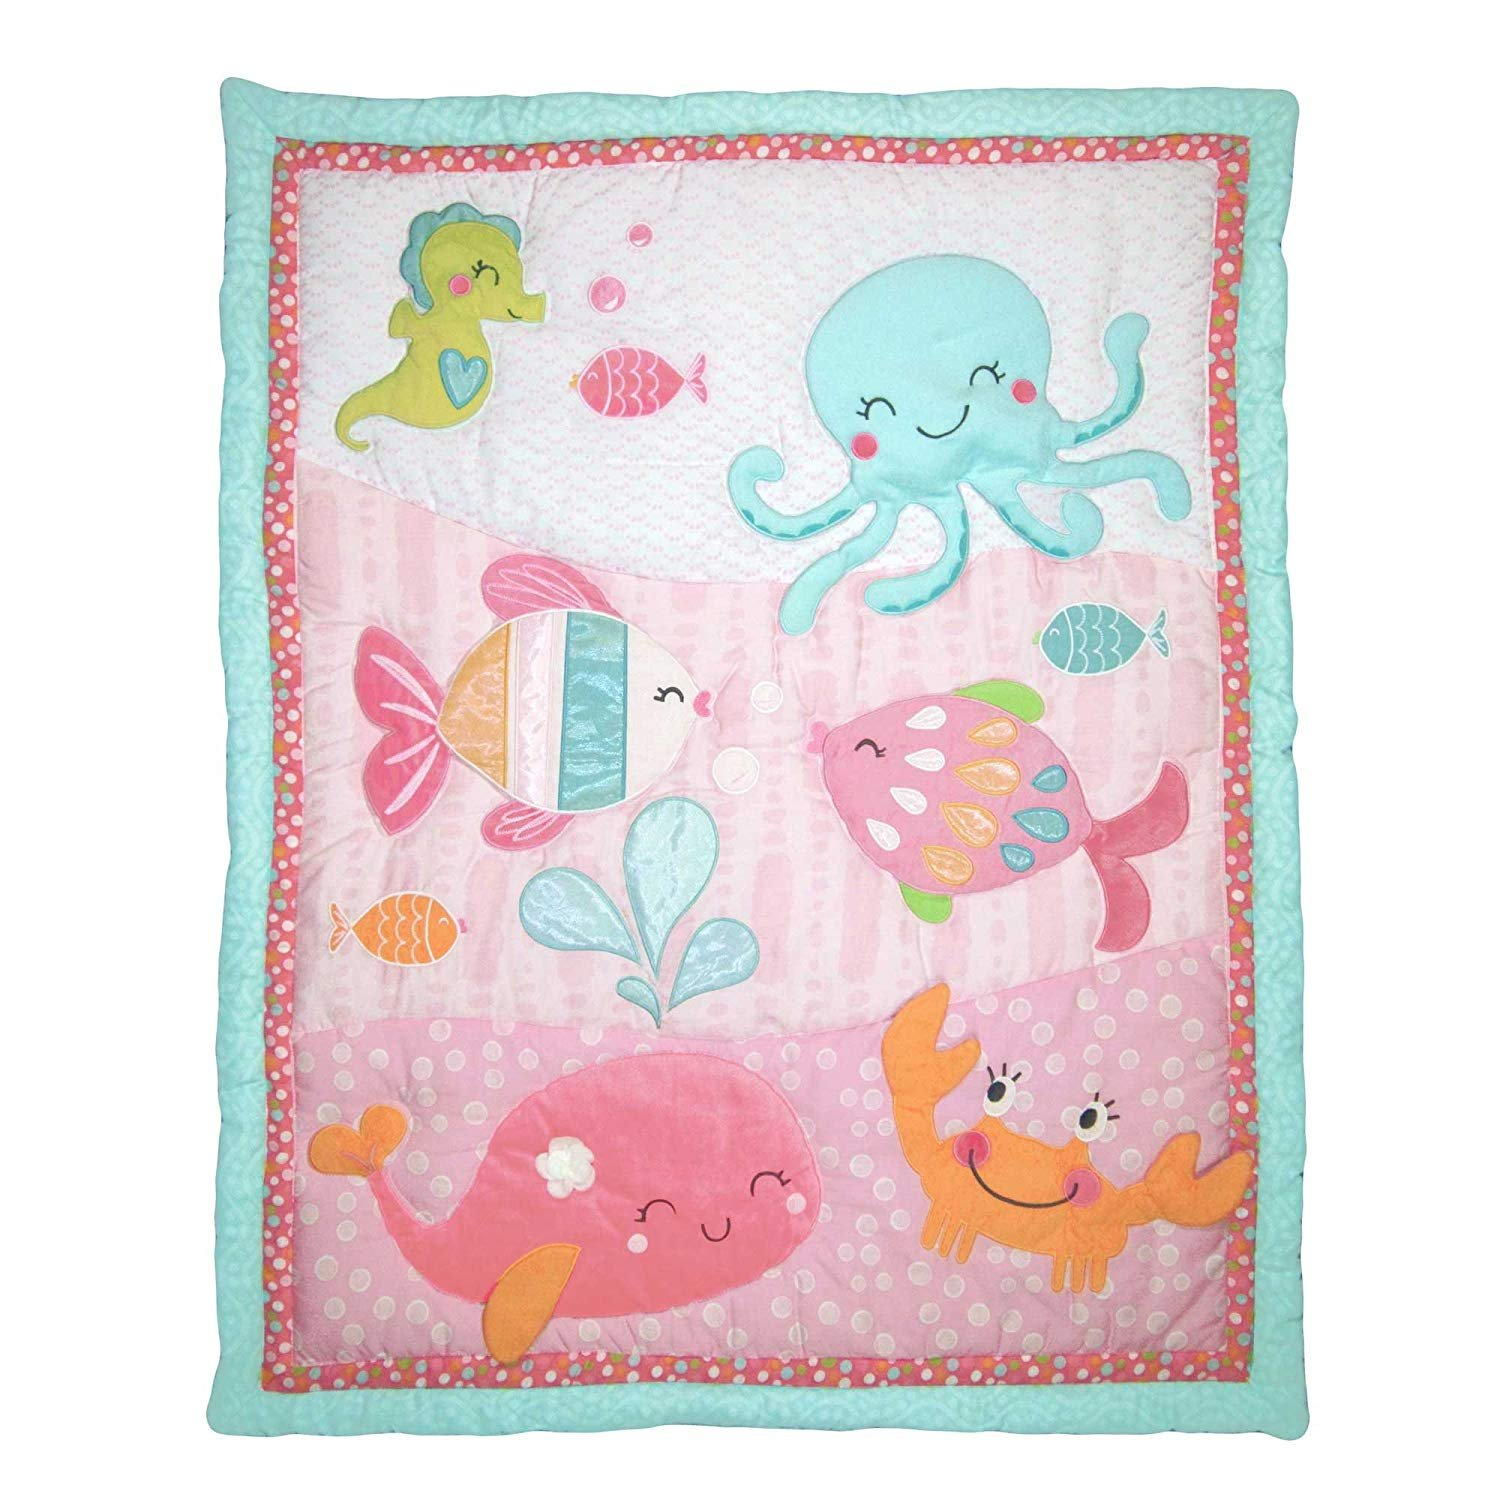 Carter's Under The Sea Baby Applique Luxury (Crib Quilt/Comforter Only) Pink Crown Crafts